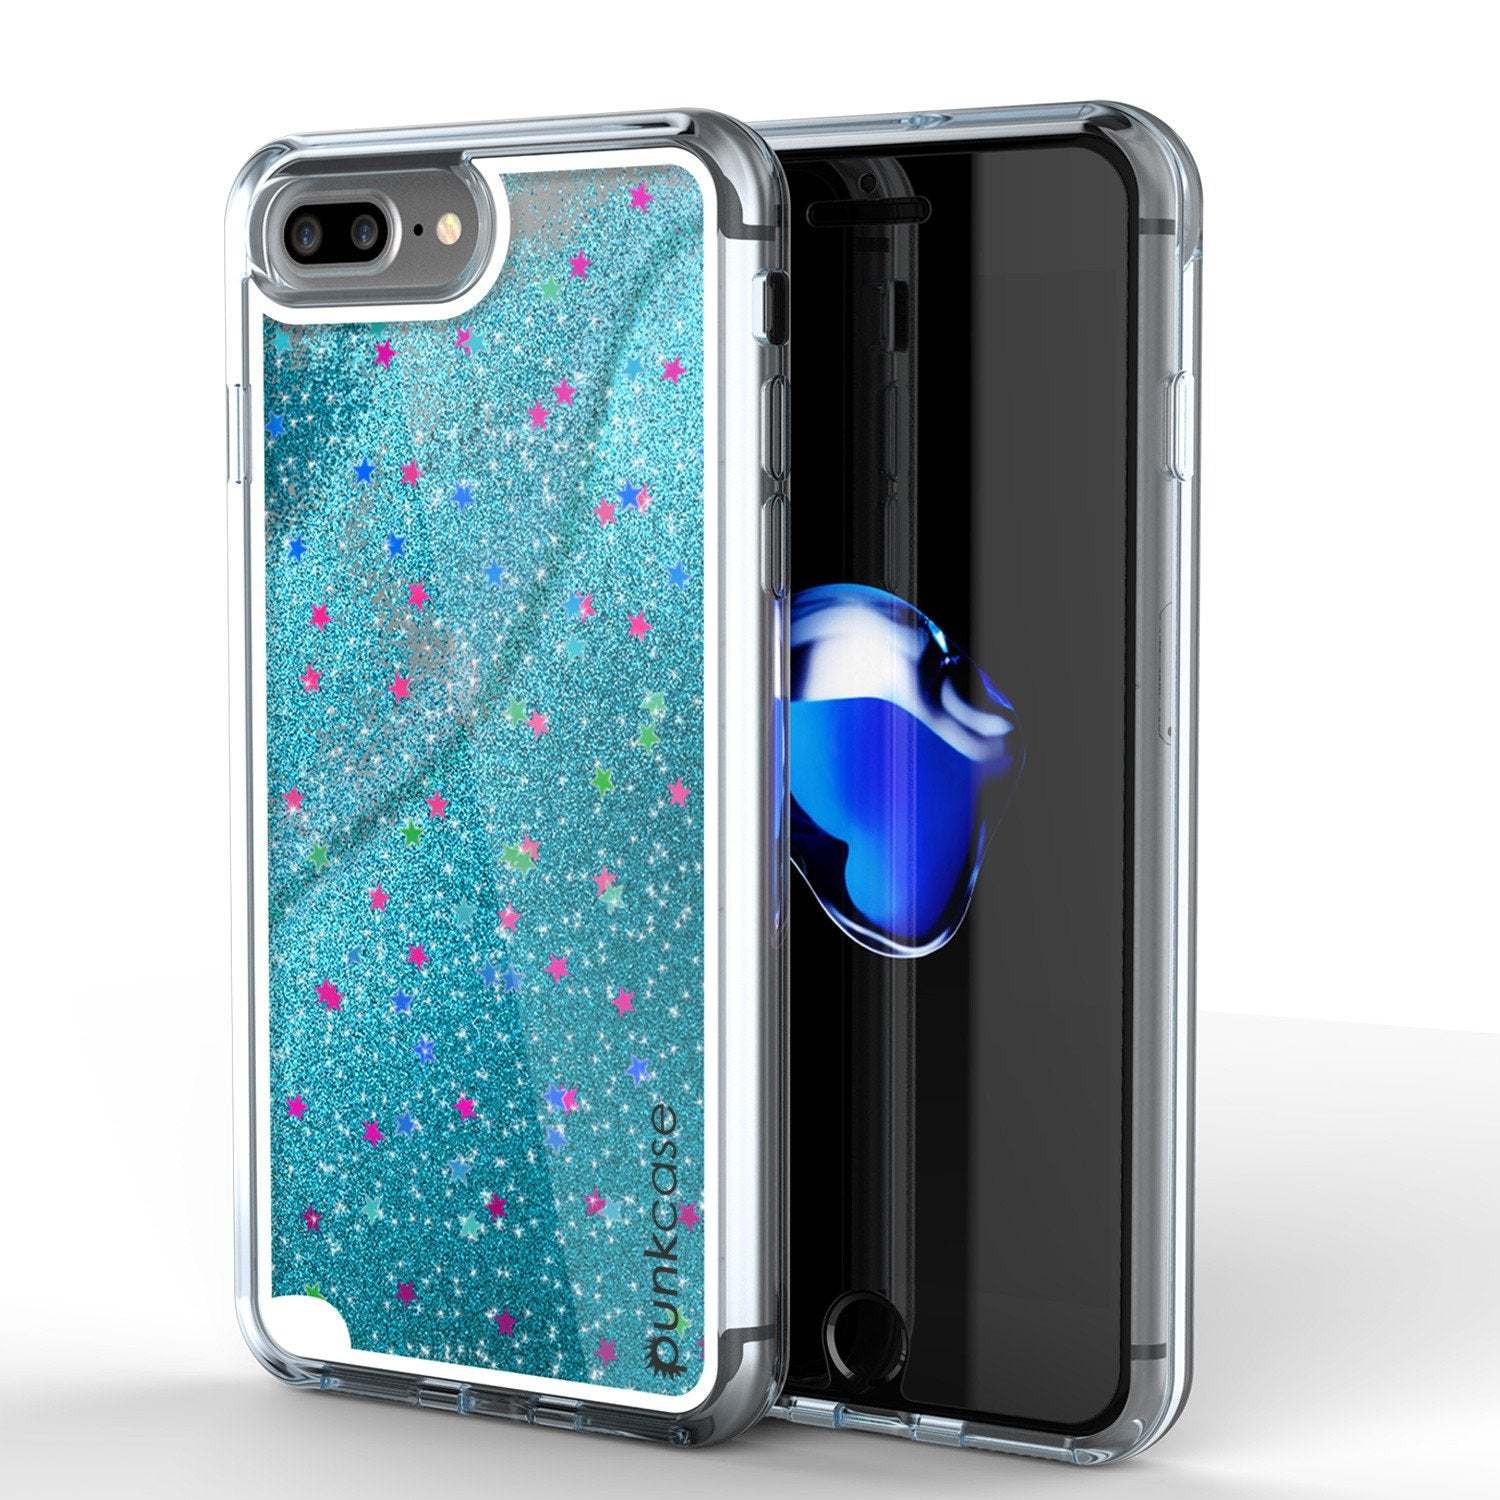 iPhone 7 Plus Case, PunkCase LIQUID Teal Series, Protective Dual Layer Floating Glitter Cover